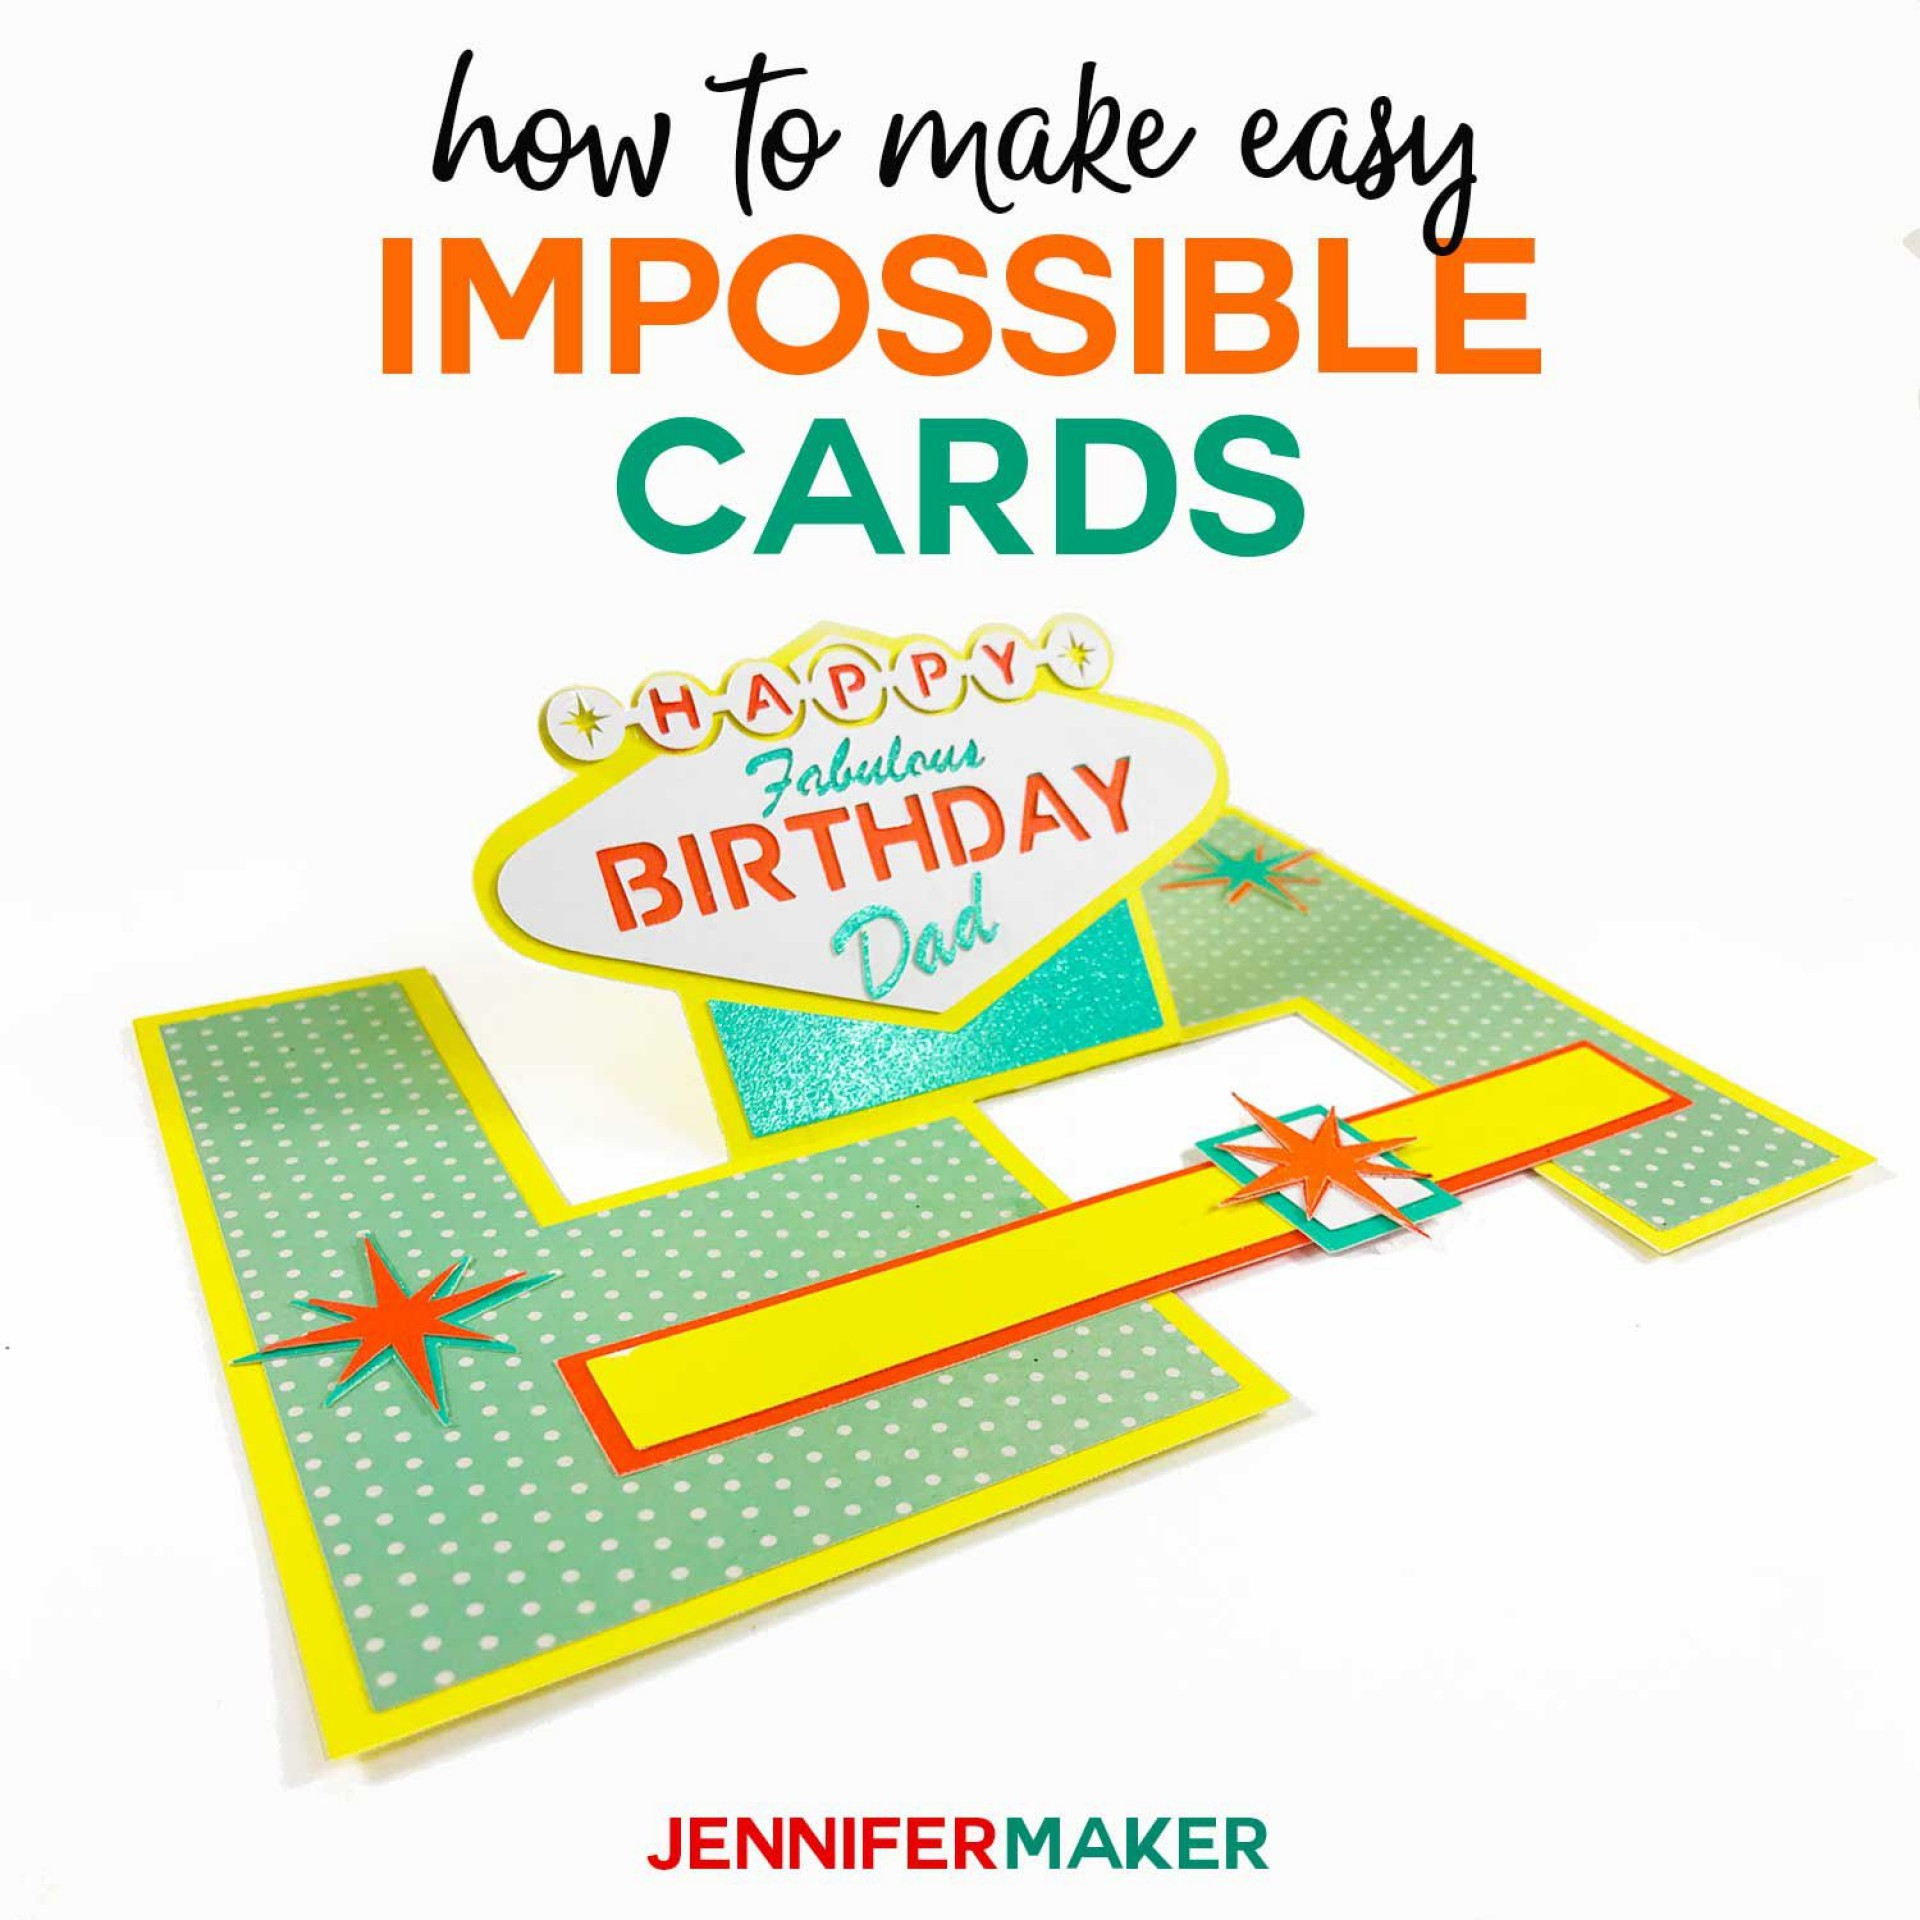 006 Remarkable Pop Up Card Template For Birthday Image  Birthdays Free Download Pdf1920